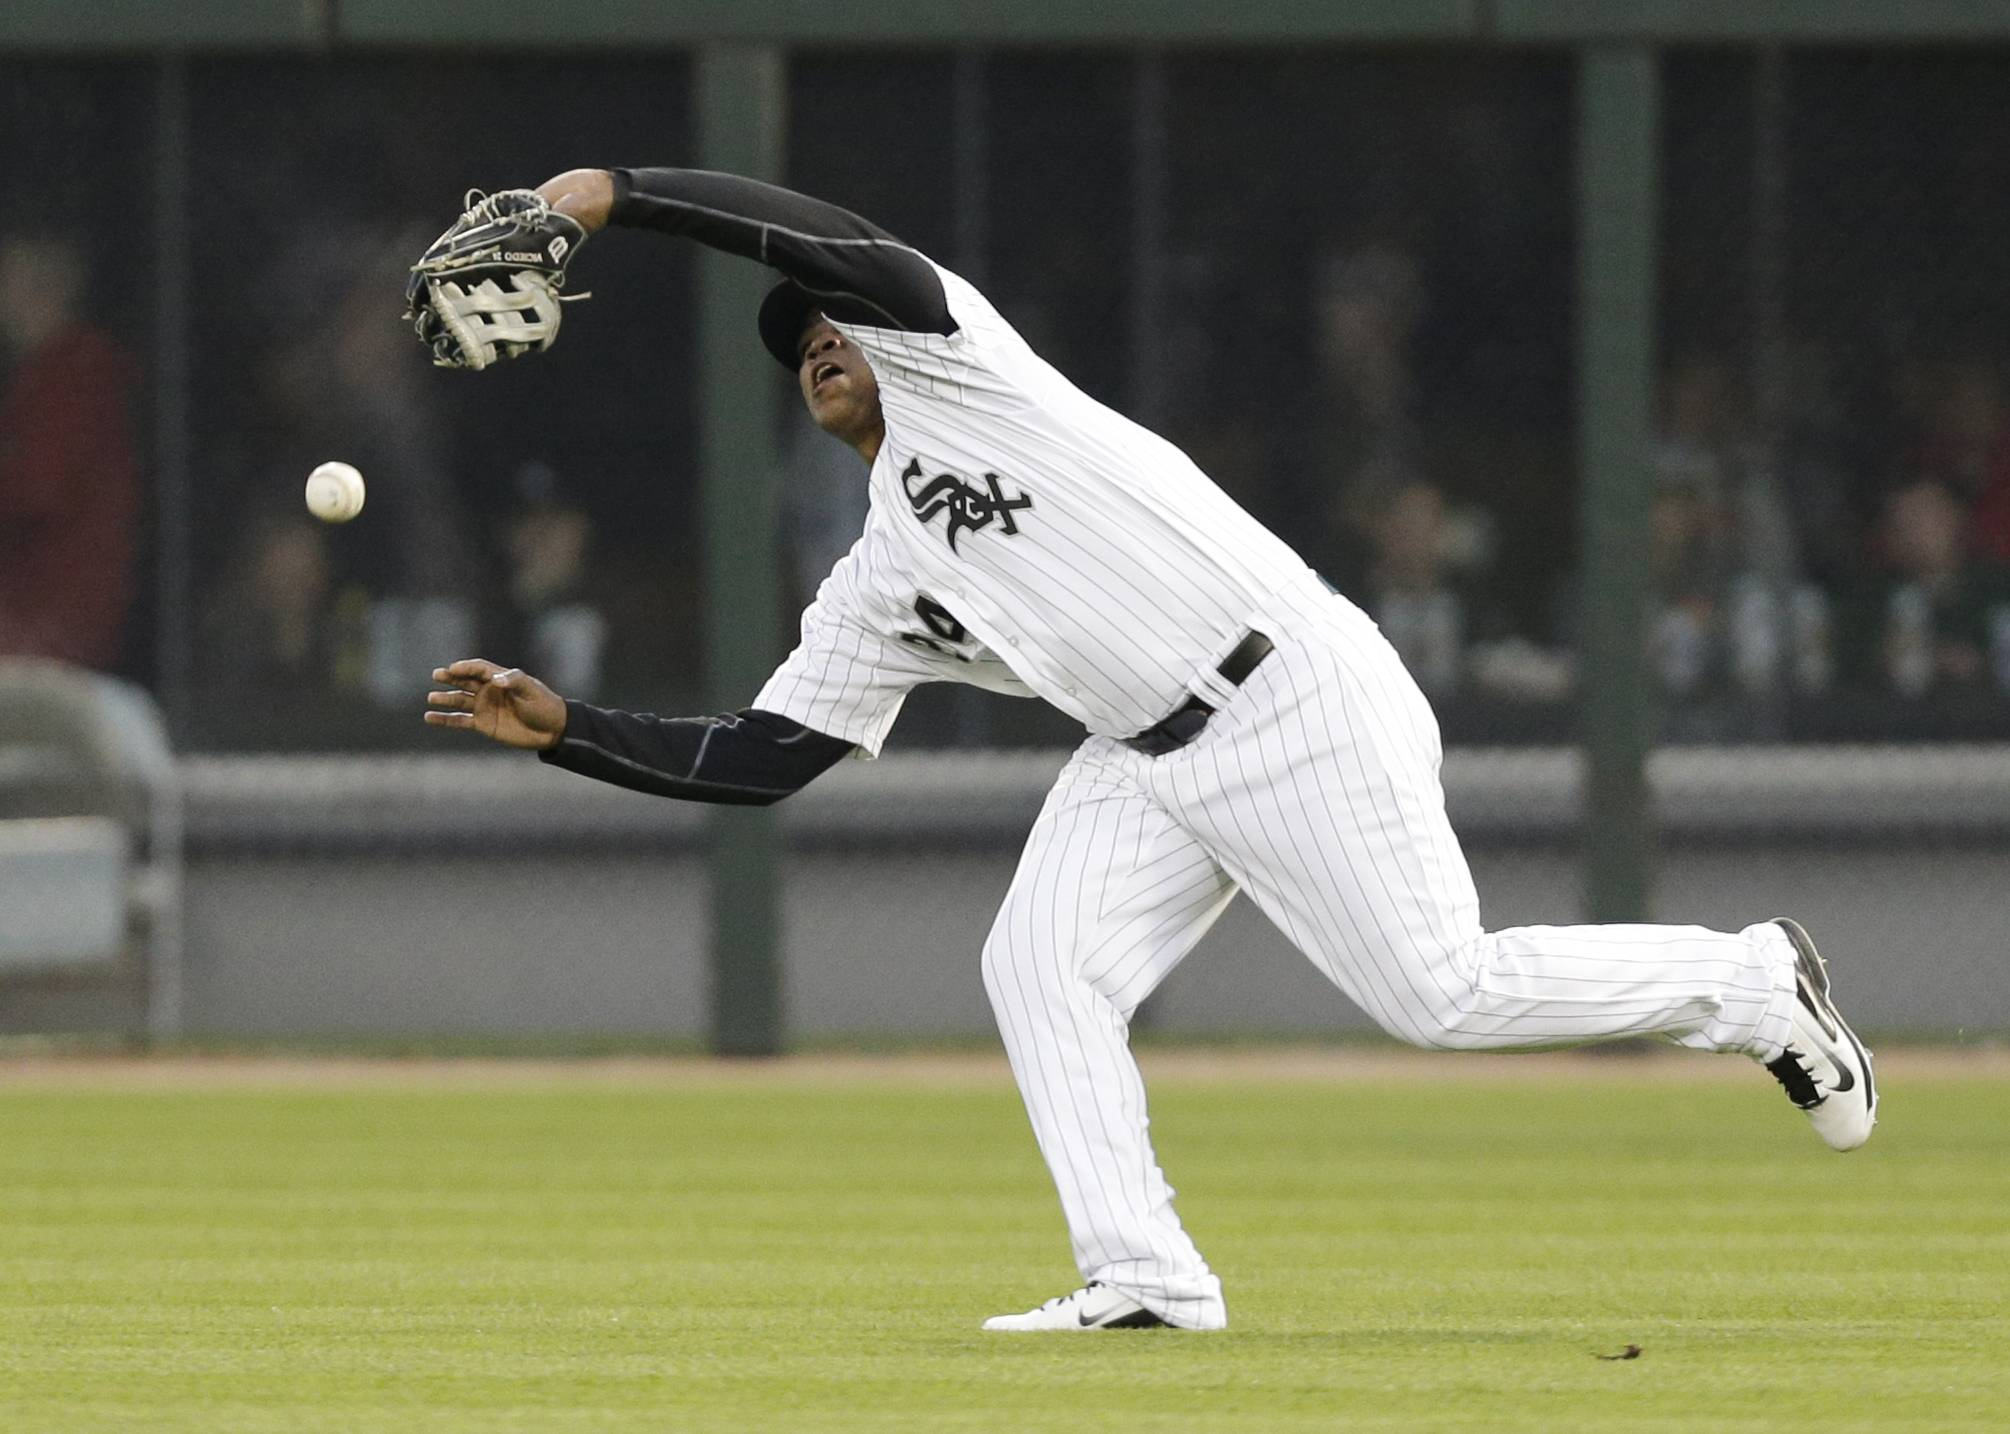 Chicago White Sox right fielder Dayan Viciedo cannot catch a ball hit by Tampa Bay Rays' Sean Rodriguez during the fifth inning of a baseball game in Chicago, Saturday, April 26, 2014.